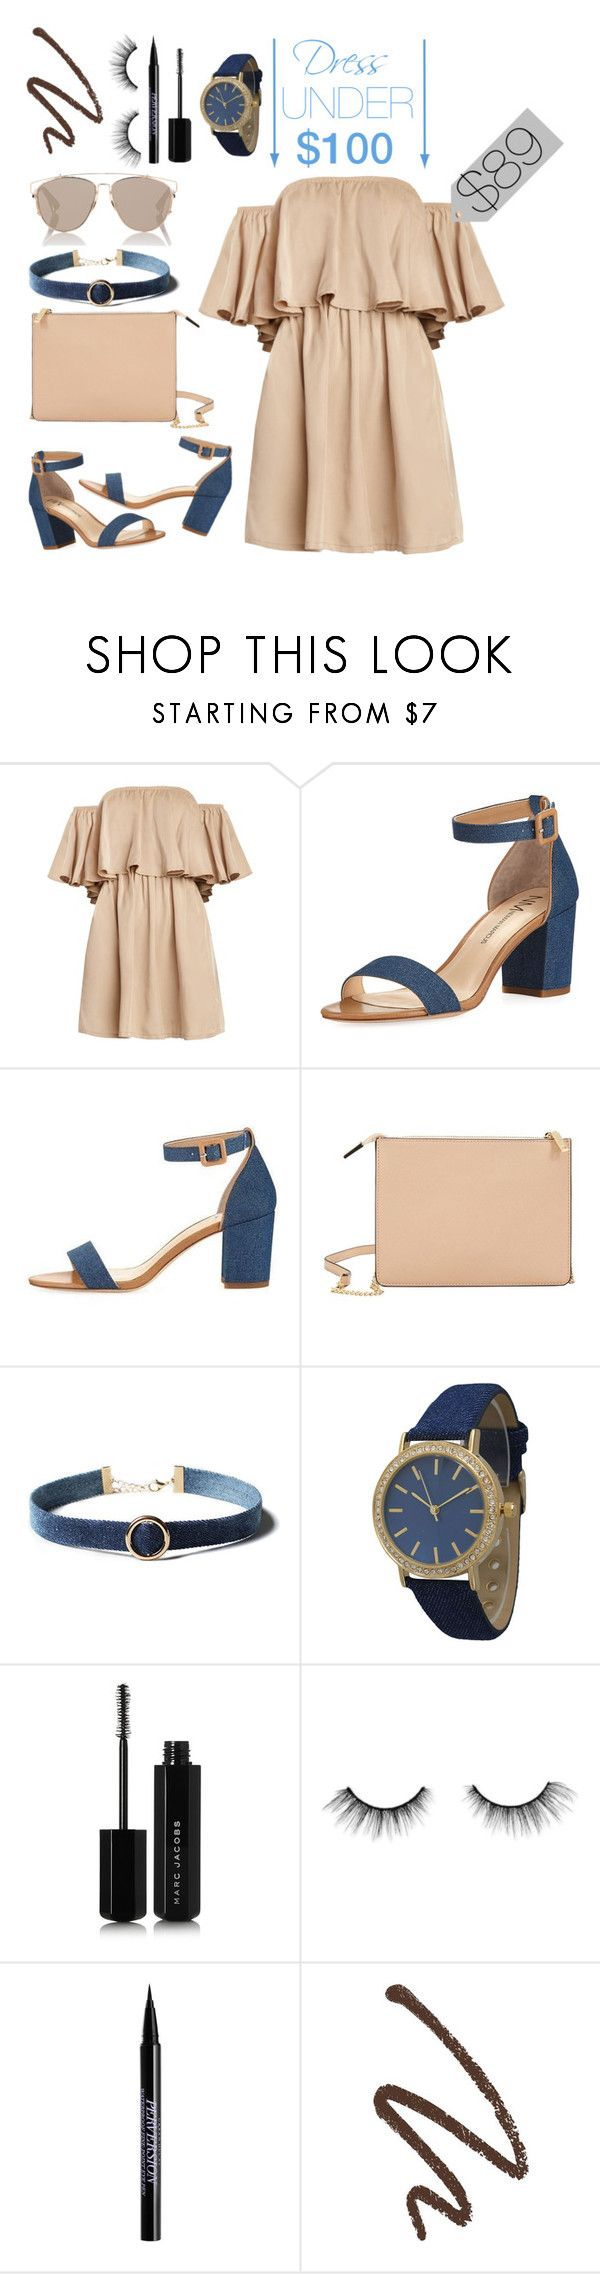 """""""Dress Under $100"""" by fentymelike ❤ liked on Polyvore featuring Neiman Marcus, MANGO, WithChic, Olivia Pratt, Marc Jacobs, tarte, Urban Decay and Christian Dior"""